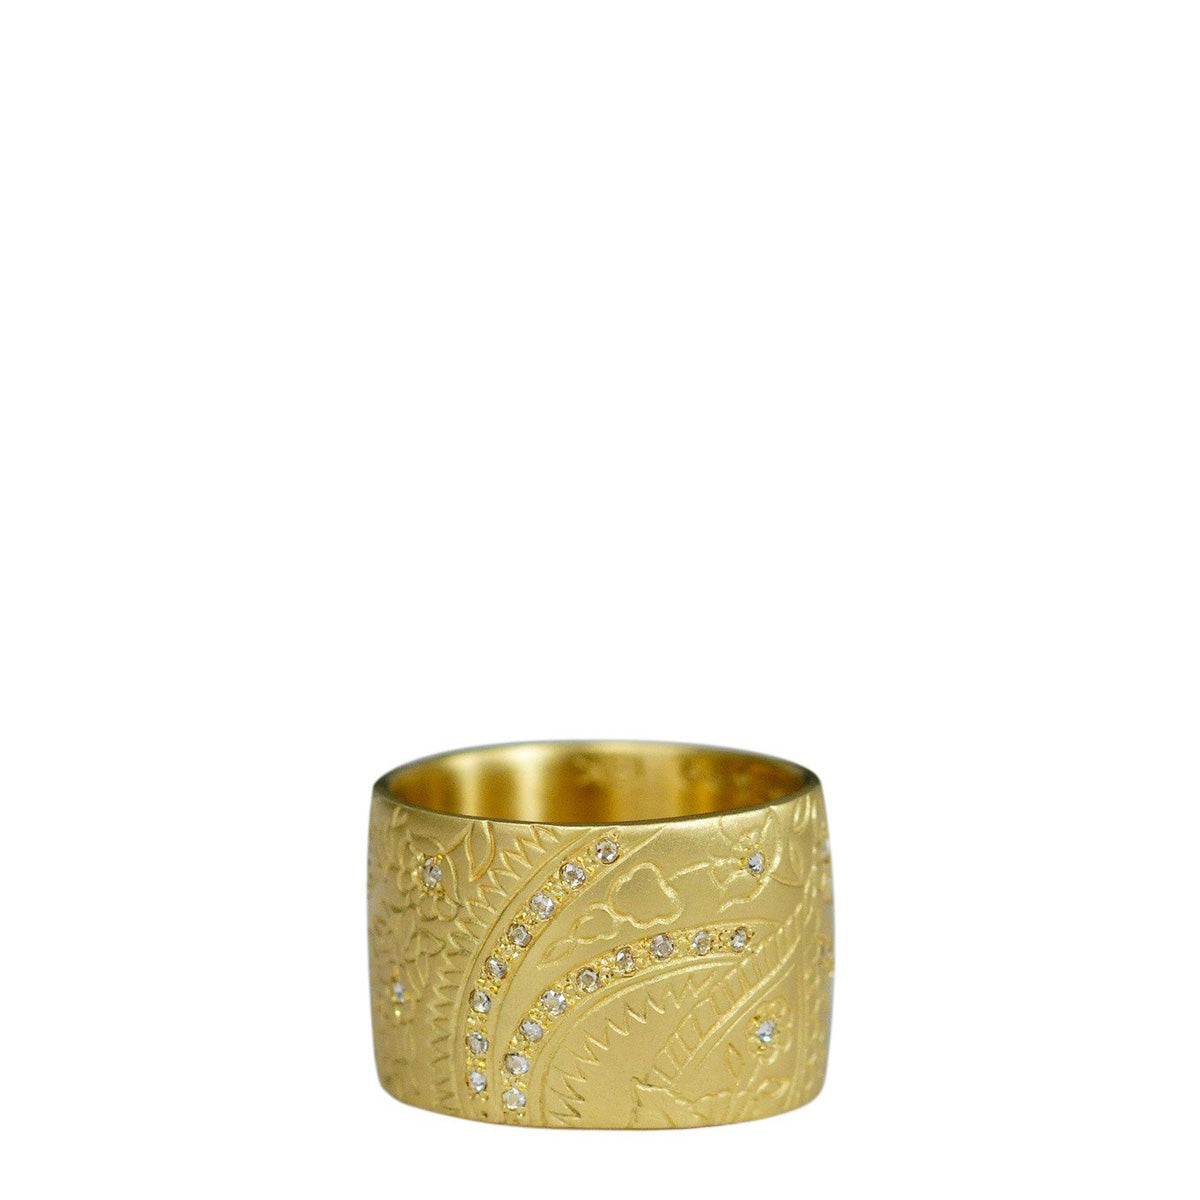 18K Gold Wide Engraved Paisley Band with Diamonds